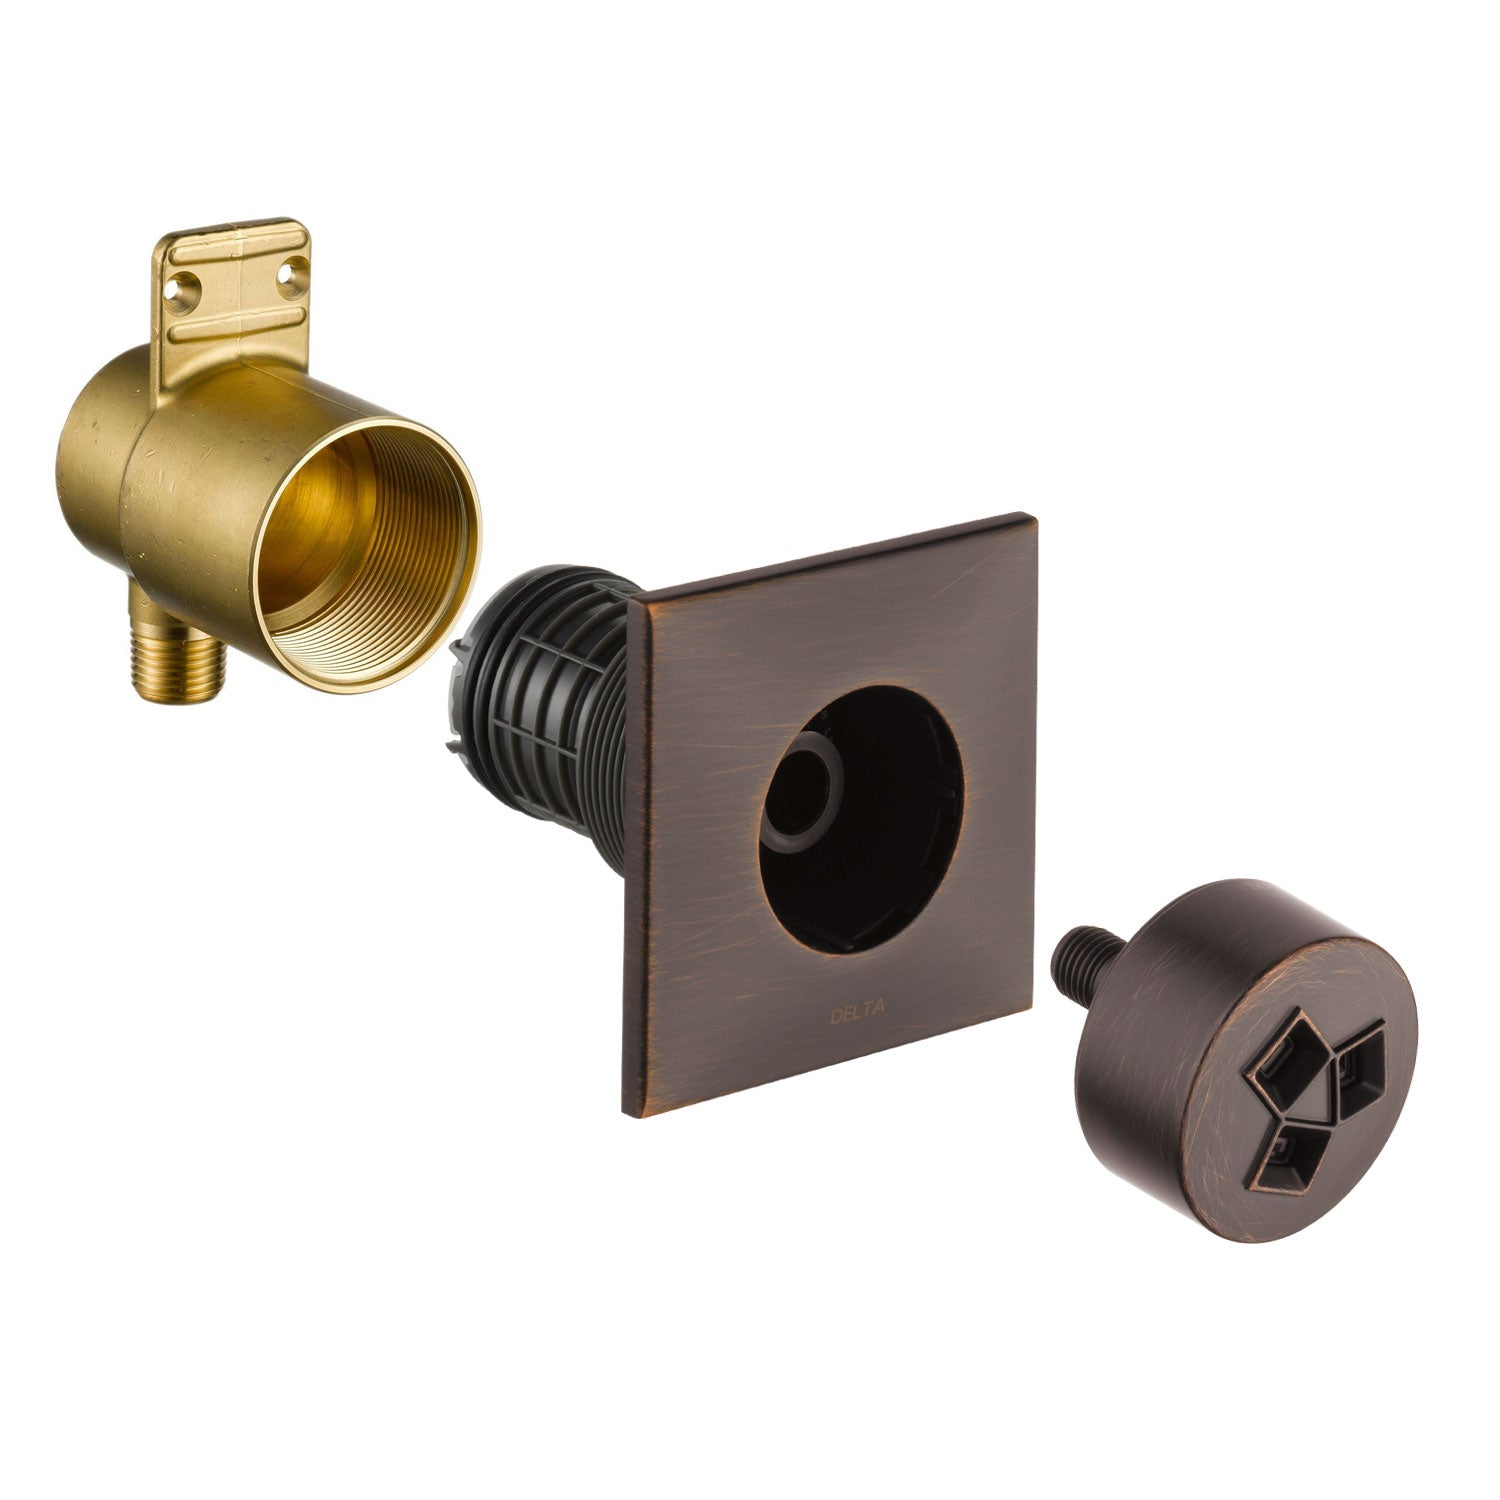 Delta Venetian Bronze Finish HydraChoice Invigorating H2Okinetic Square Shower System Body Spray COMPLETE Includes Valve, Trim, and Spray D1359V